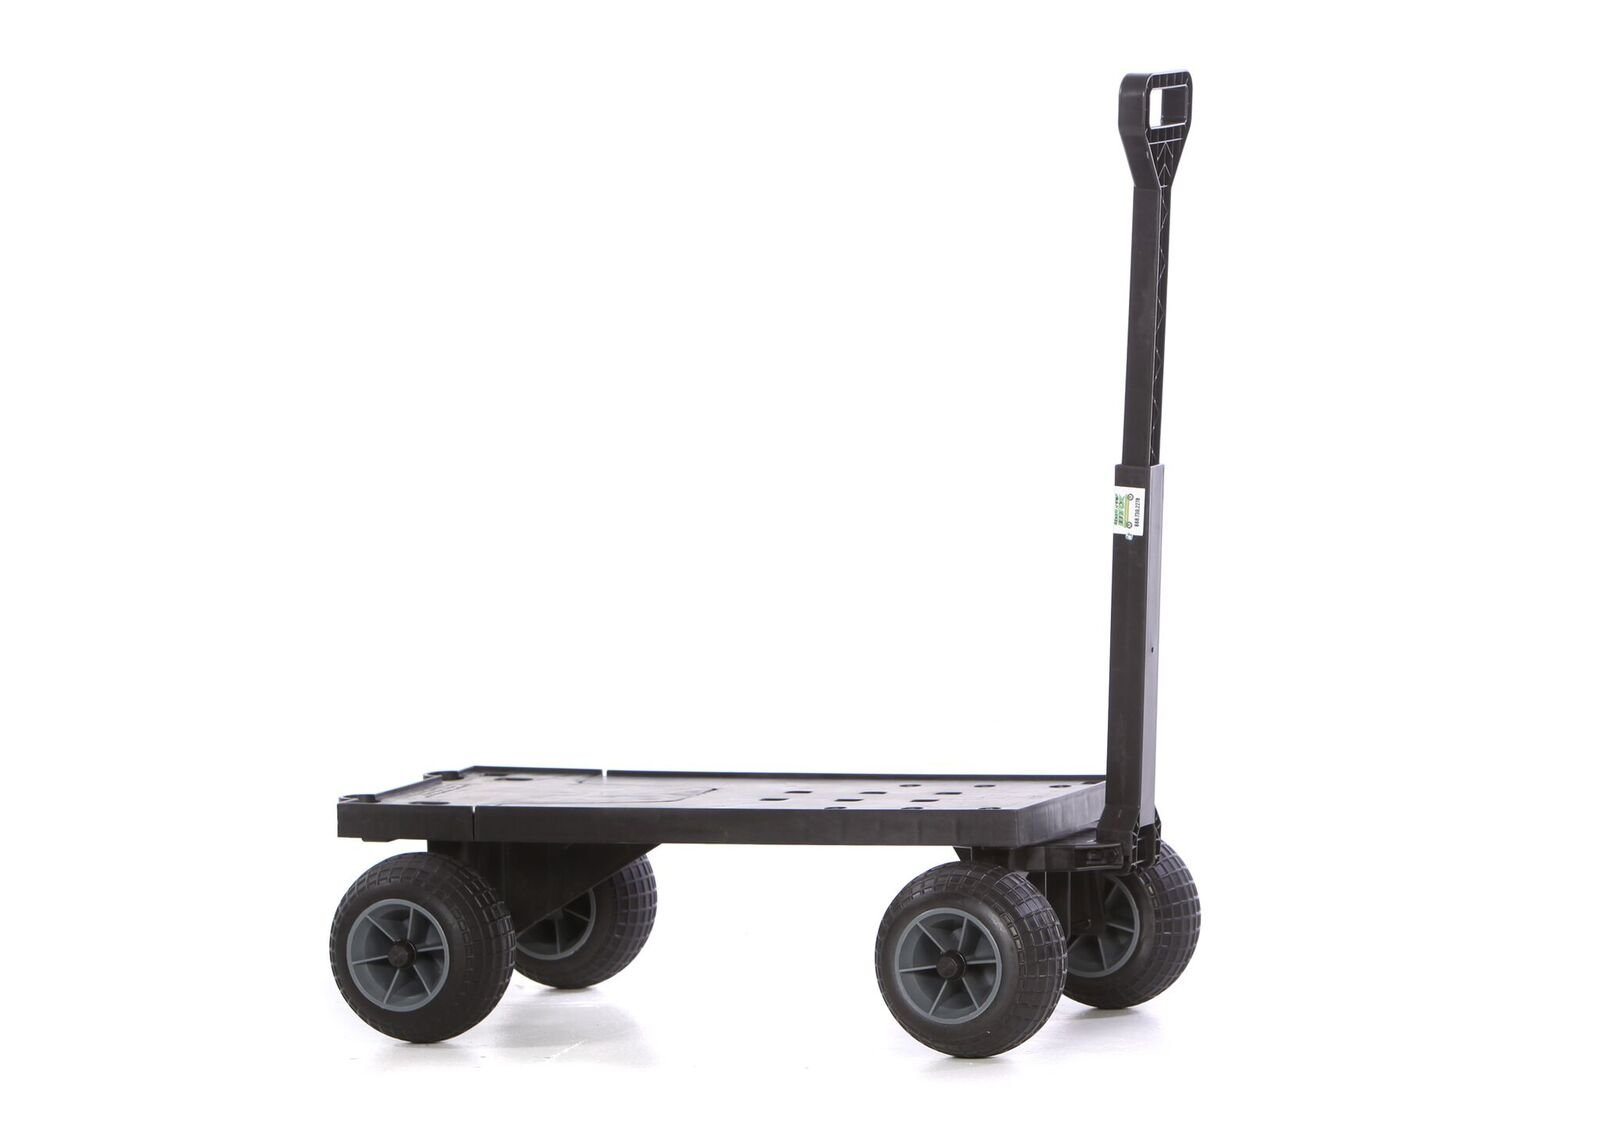 Mighty Max Cart Plus One Flatbed Yard Cart with All-Terrain Weatherproof Wheels